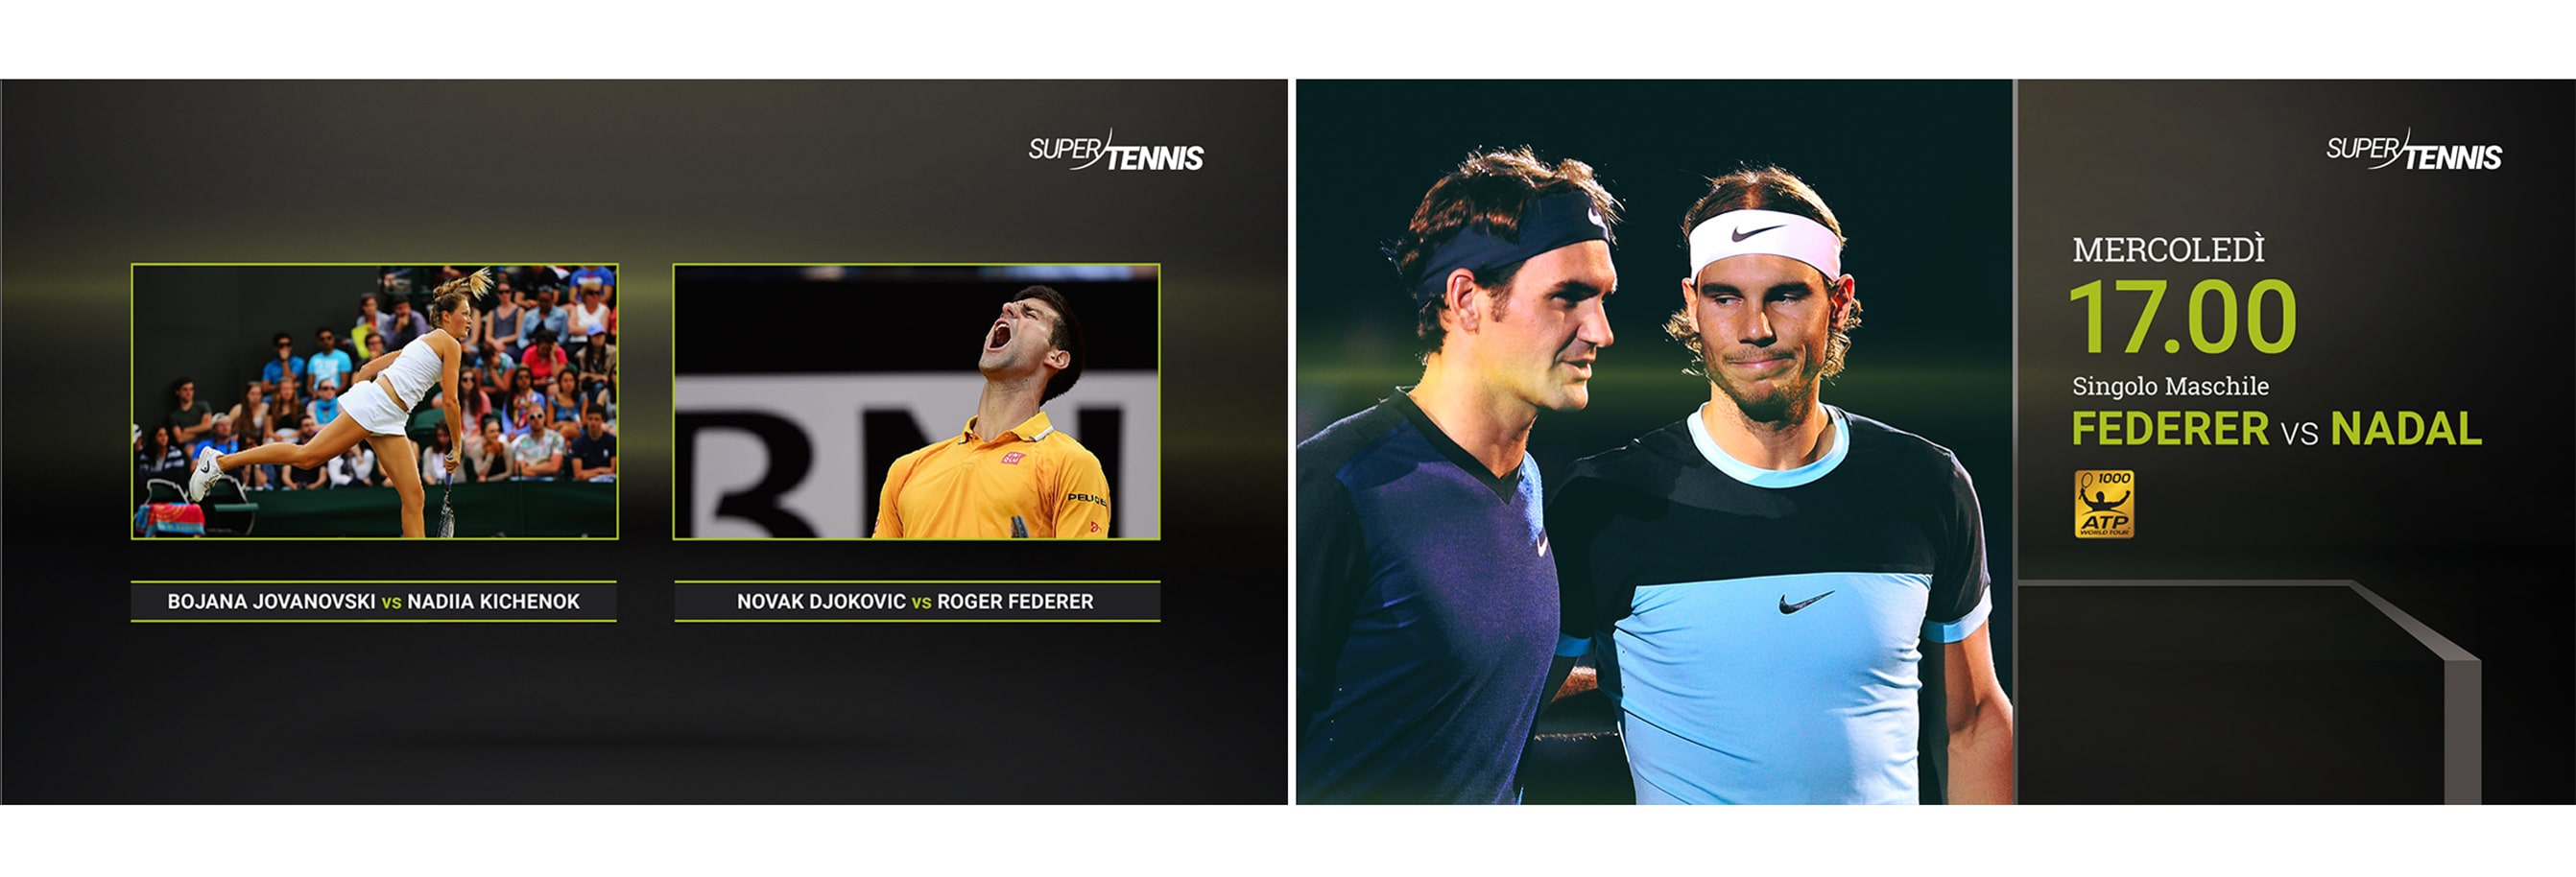 Luther Dsgn branding and broadcast design company for SuperTennis